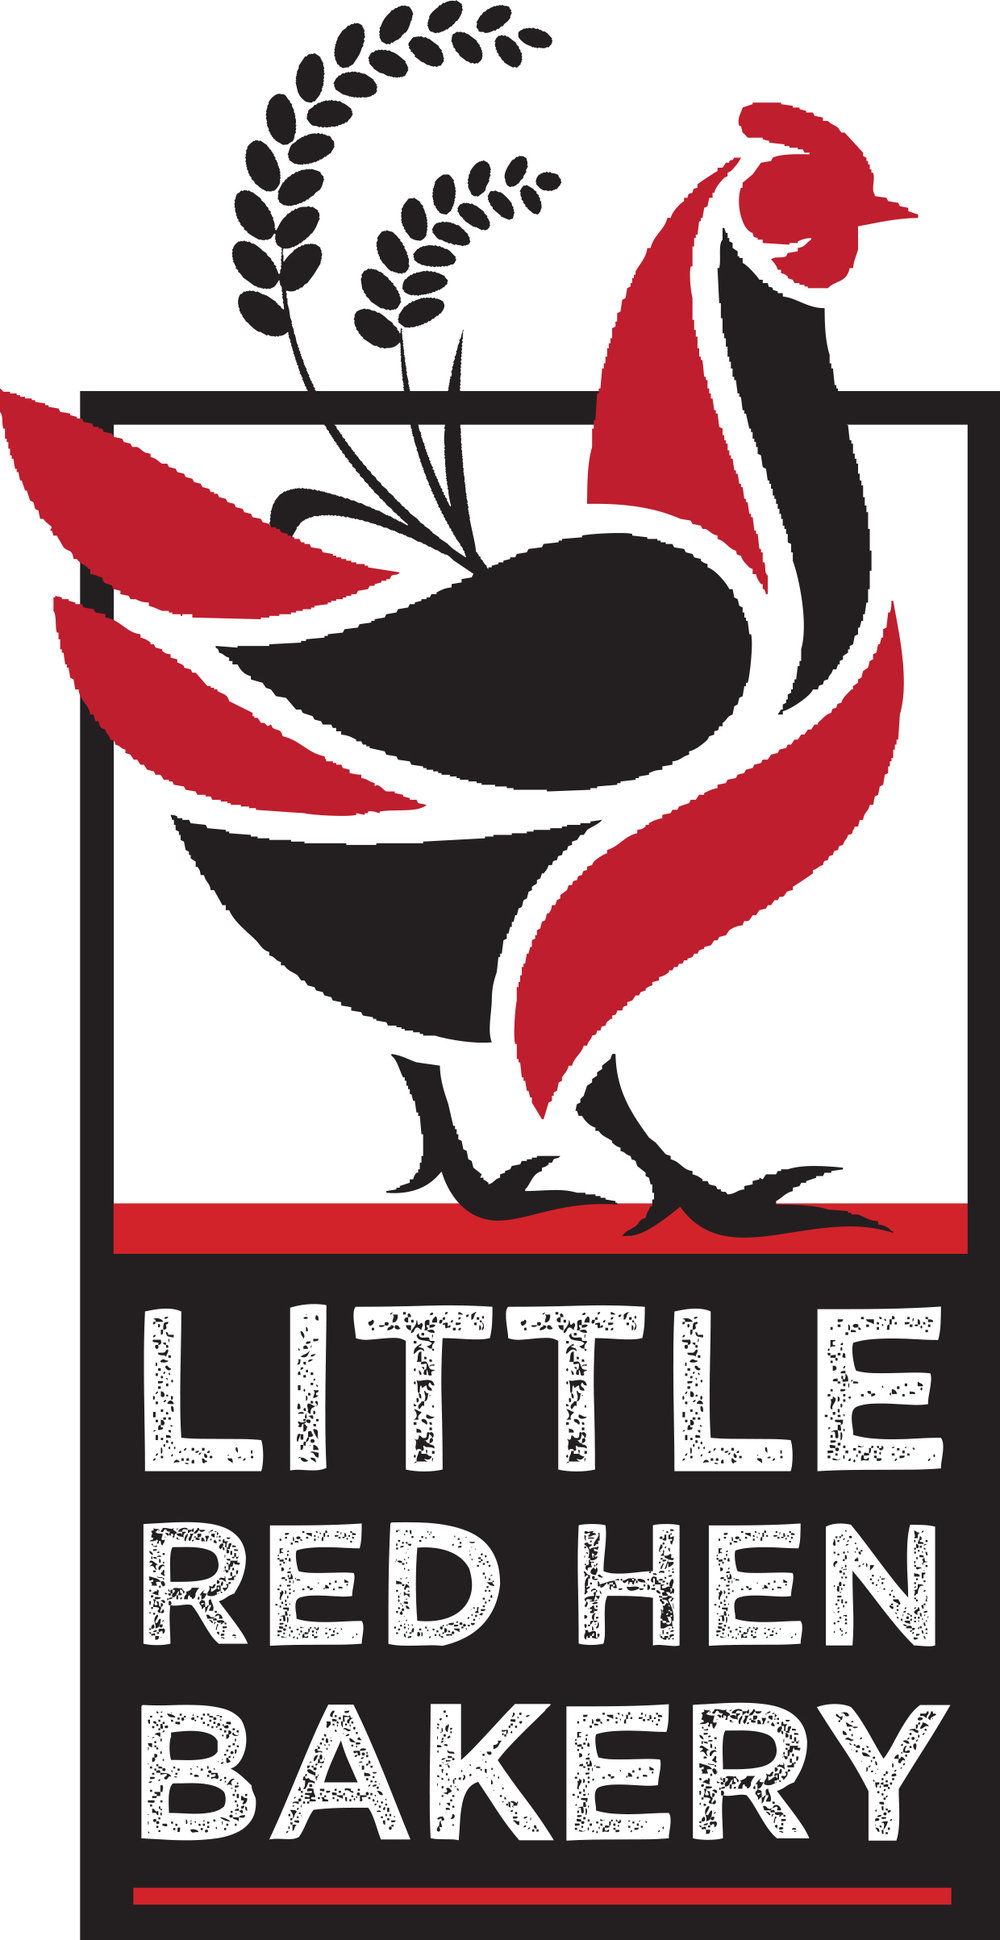 Meet our new chick - Our bread has risen from being just a restaurant staple, to be the catalyst for starting a small bakery. Meet the Little Red Hen Bakery. It's the same people, same place, and same great bread. Plus more pastries for you to try. Check it out at at littleredhenbakerywhidbey.com